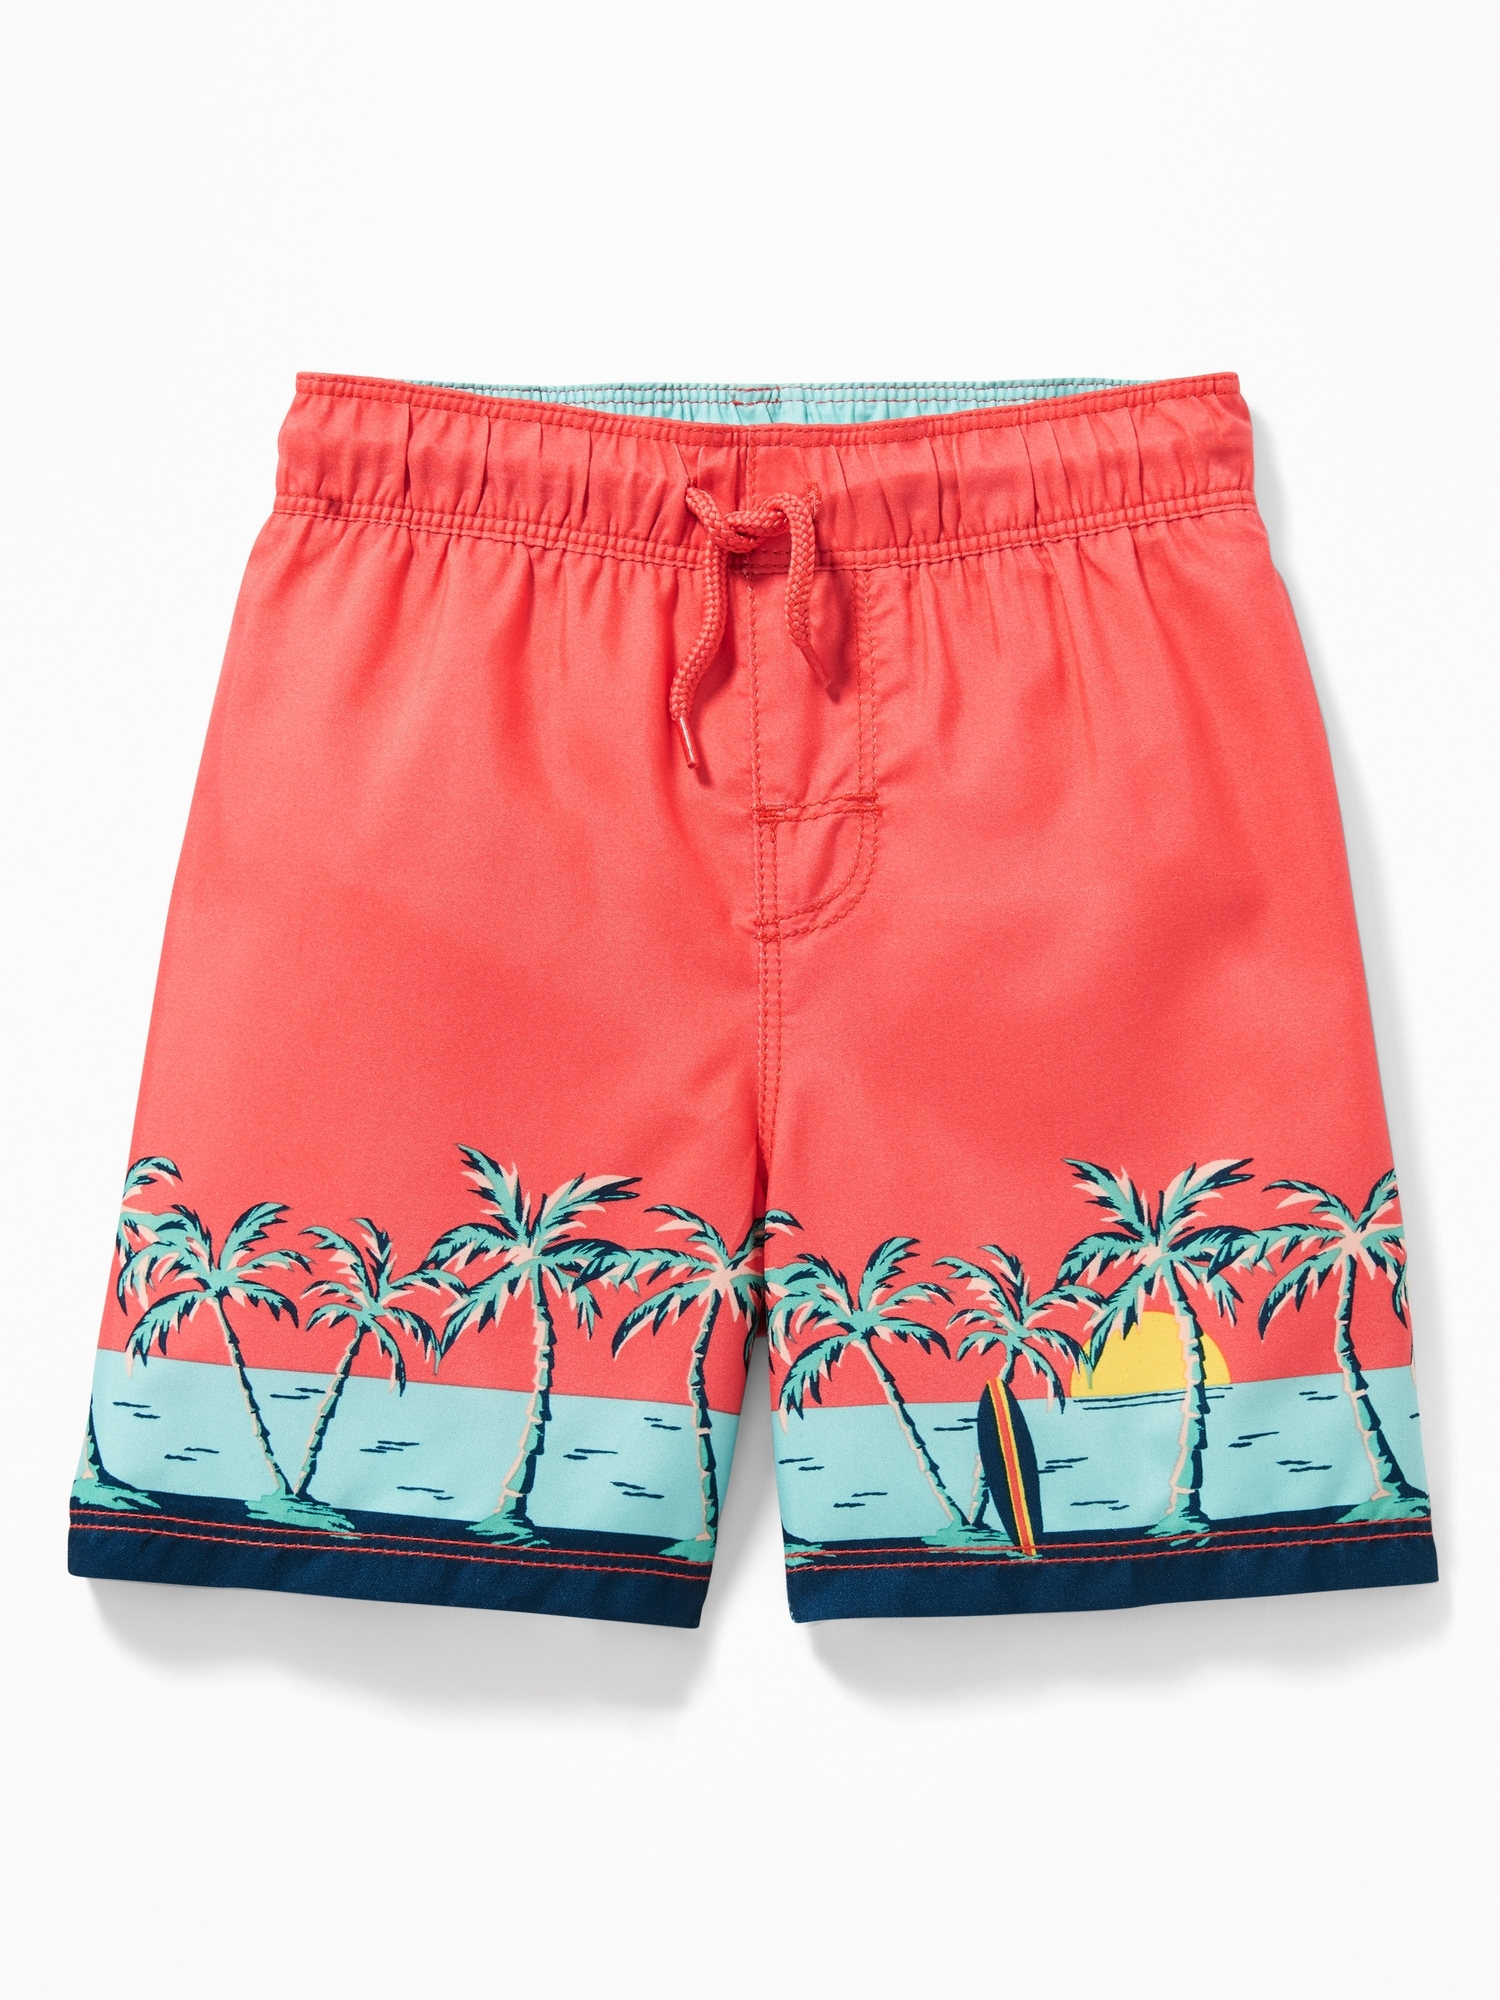 5760b71685 Scenic-Print Swim Trunks for Toddler Boys | Old Navy